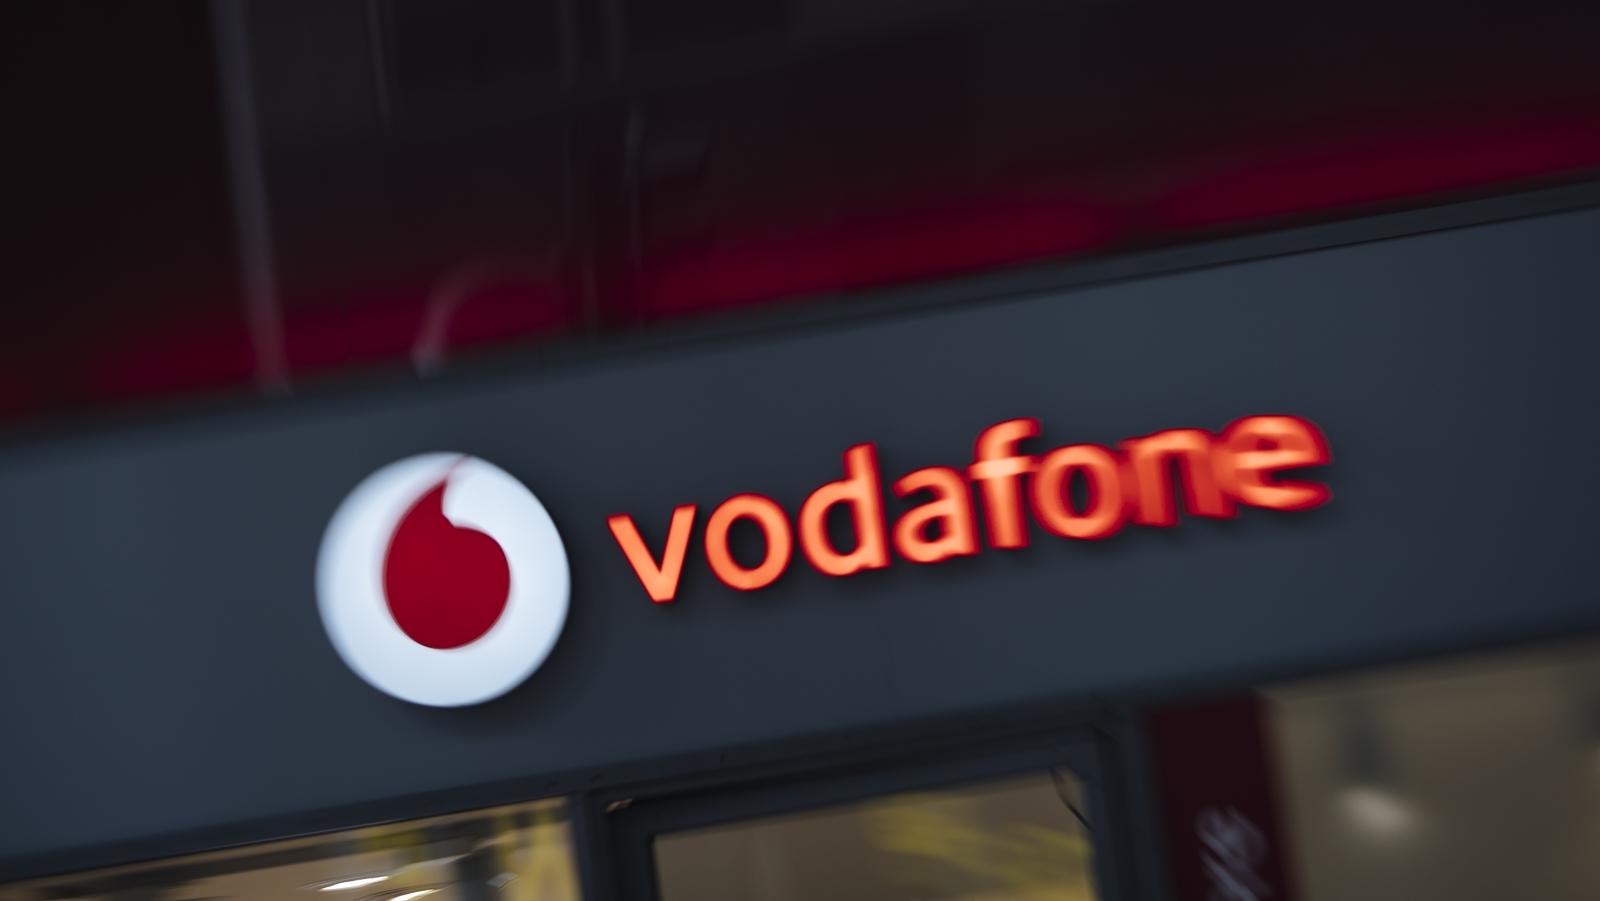 Vodafone identifies cause of network outage